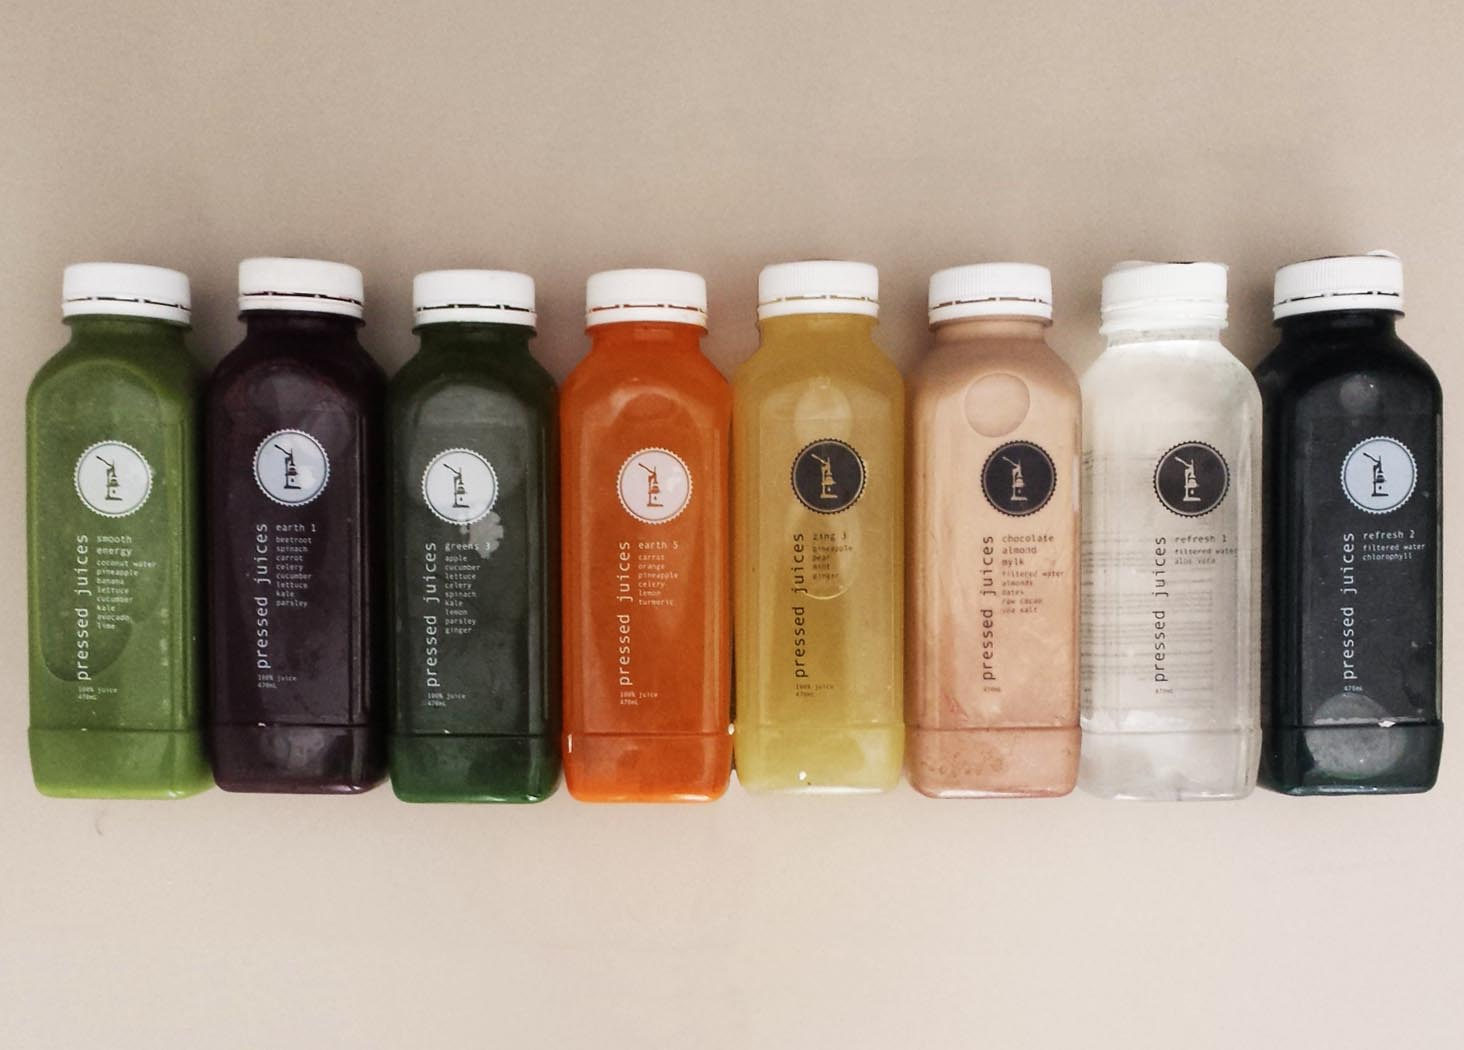 Pressed Juices, Sydney